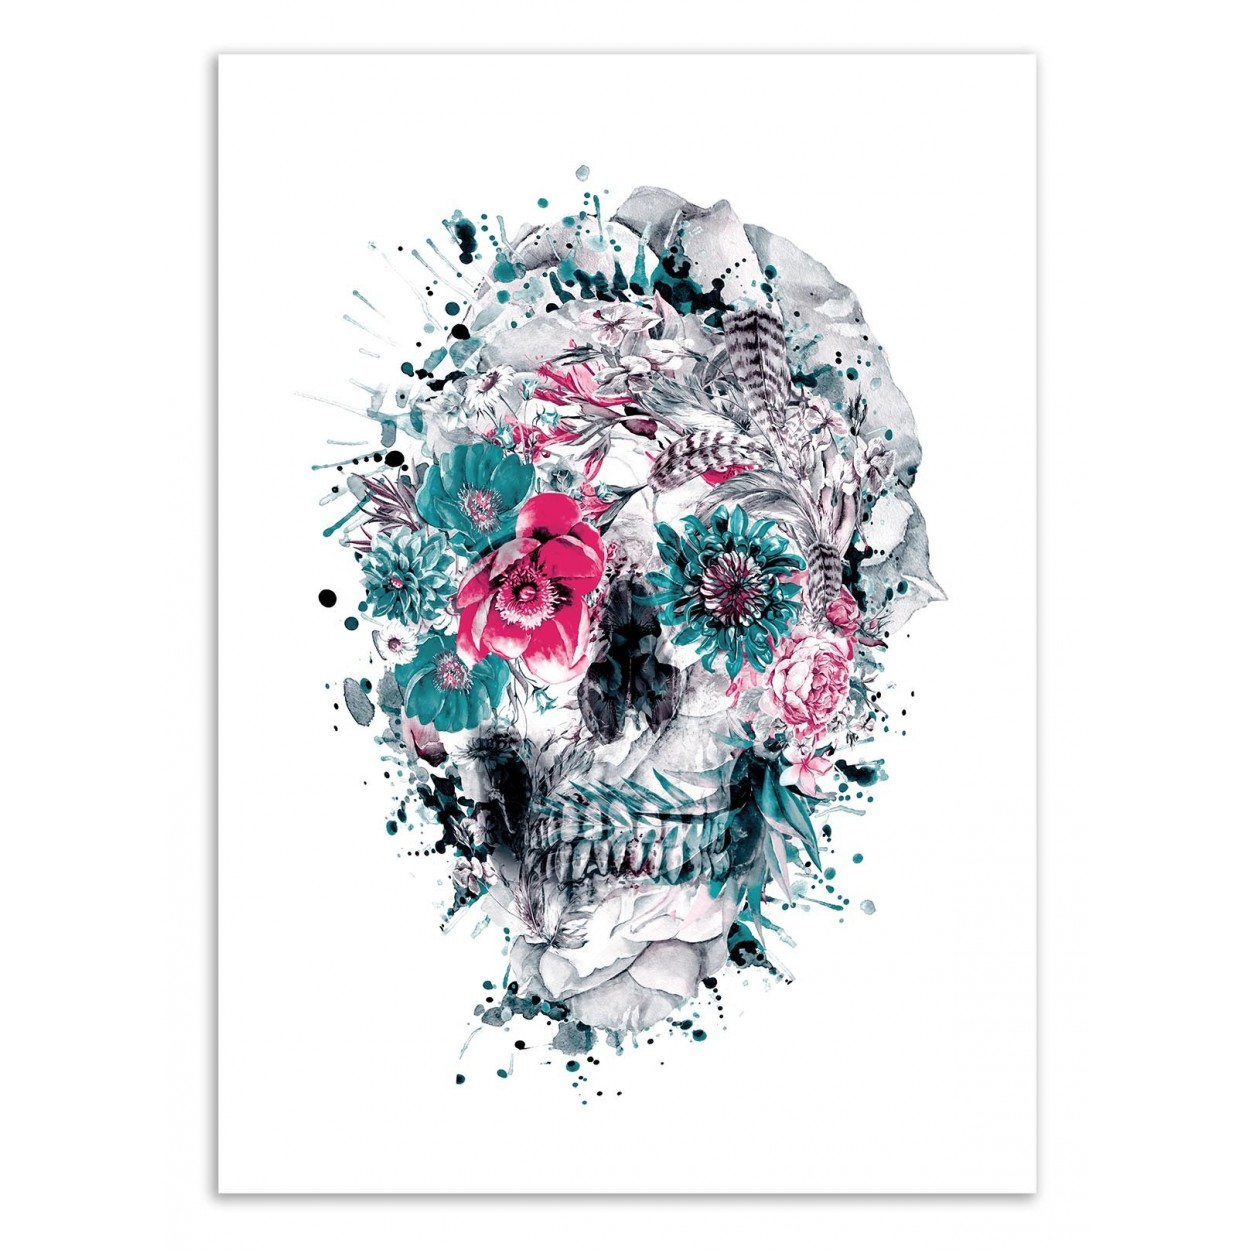 affiche d 39 art tableau poster design illustration t te de mort fleurs. Black Bedroom Furniture Sets. Home Design Ideas